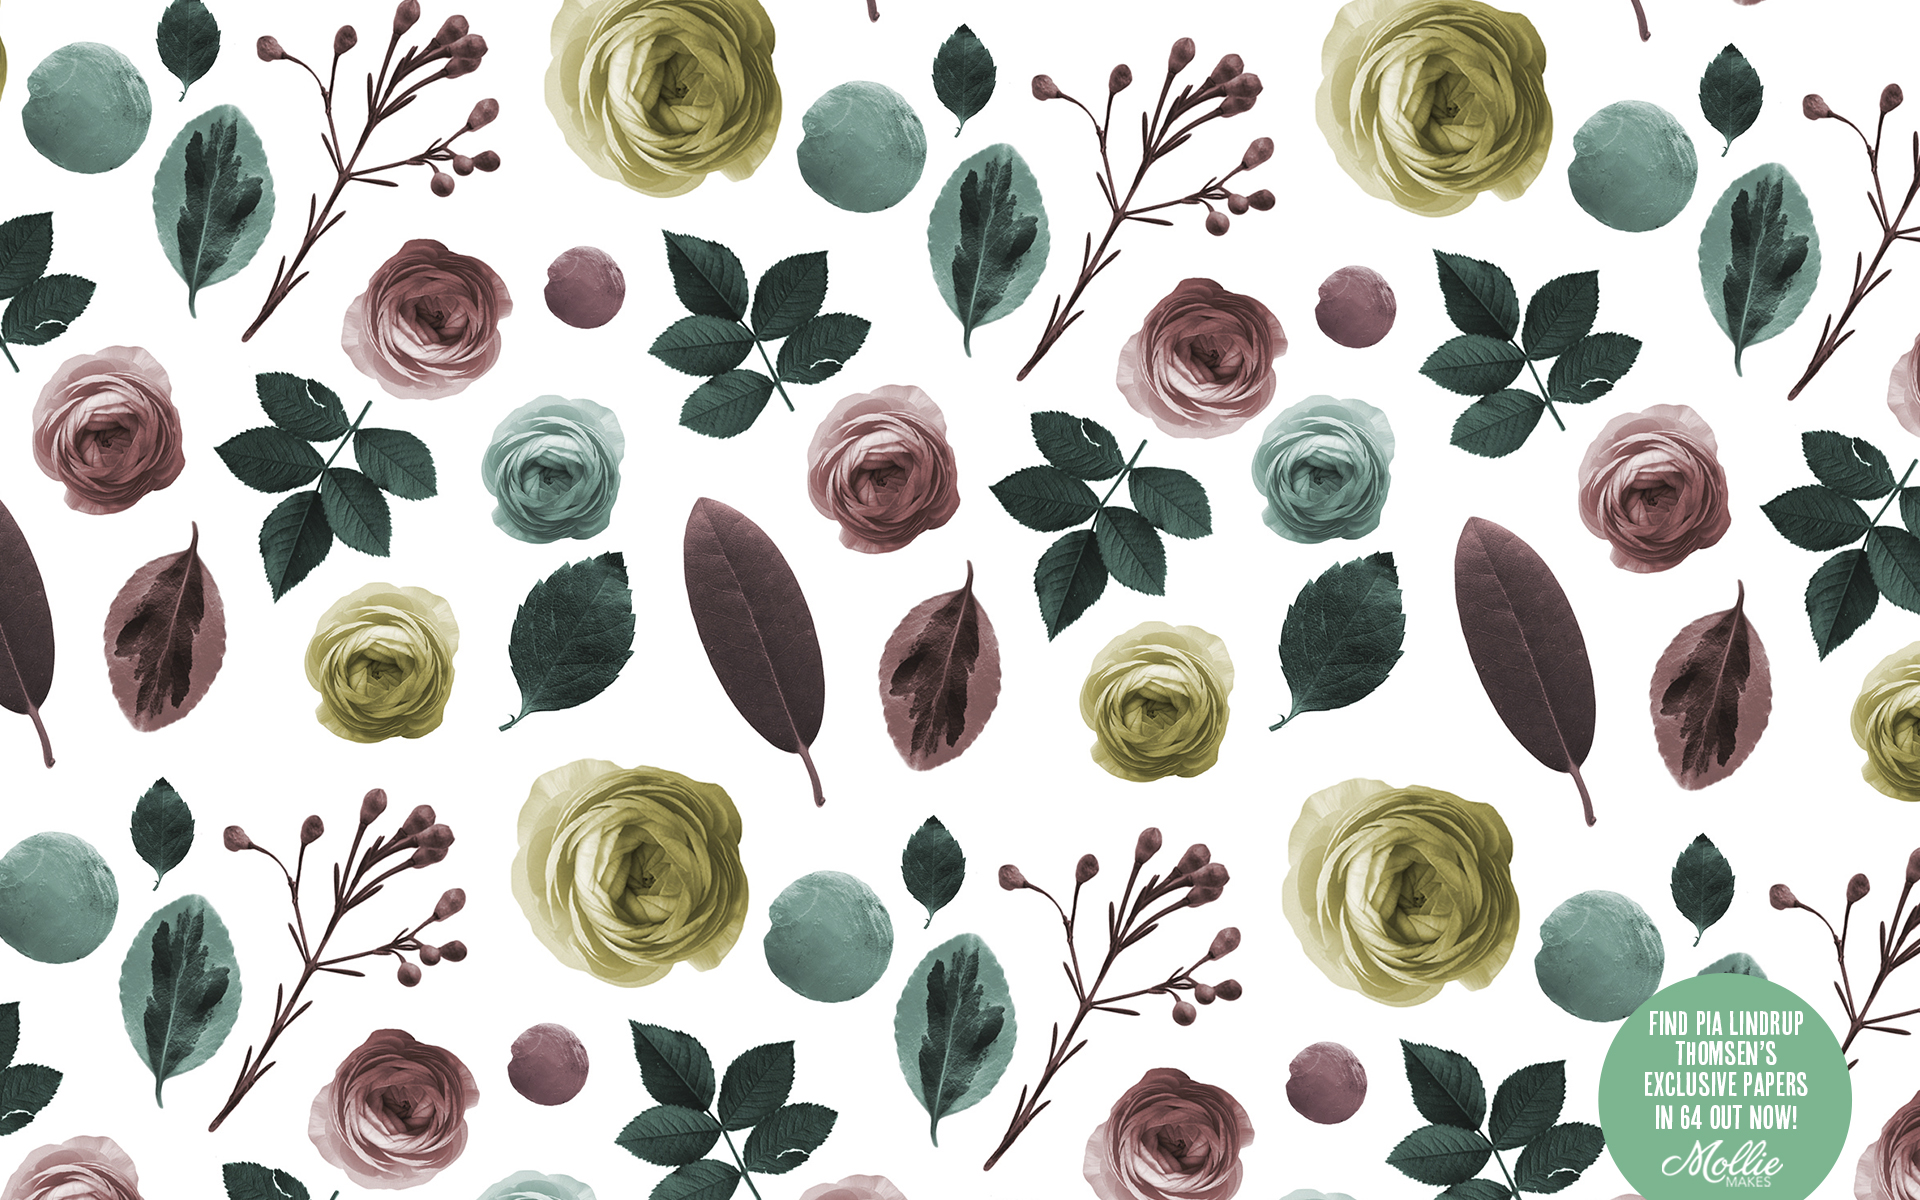 Vintage Wallpaper Vintage Floral Desktop Wallpaper Floral Wallpaper Desktop 1920x1200 Download Hd Wallpaper Wallpapertip